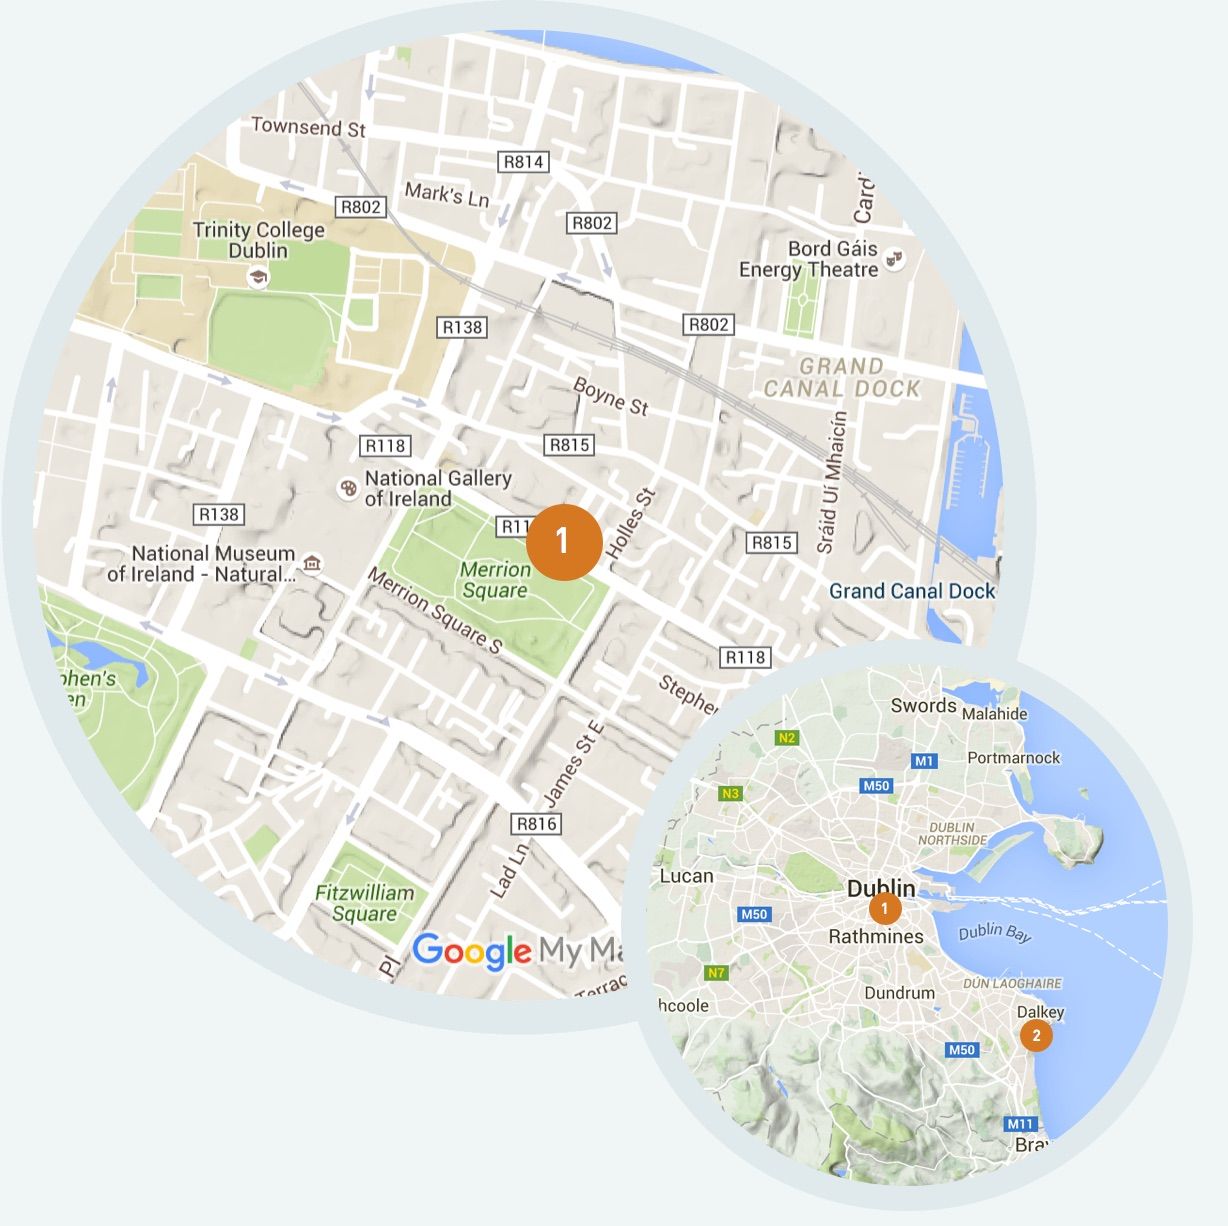 Our location in Dublin